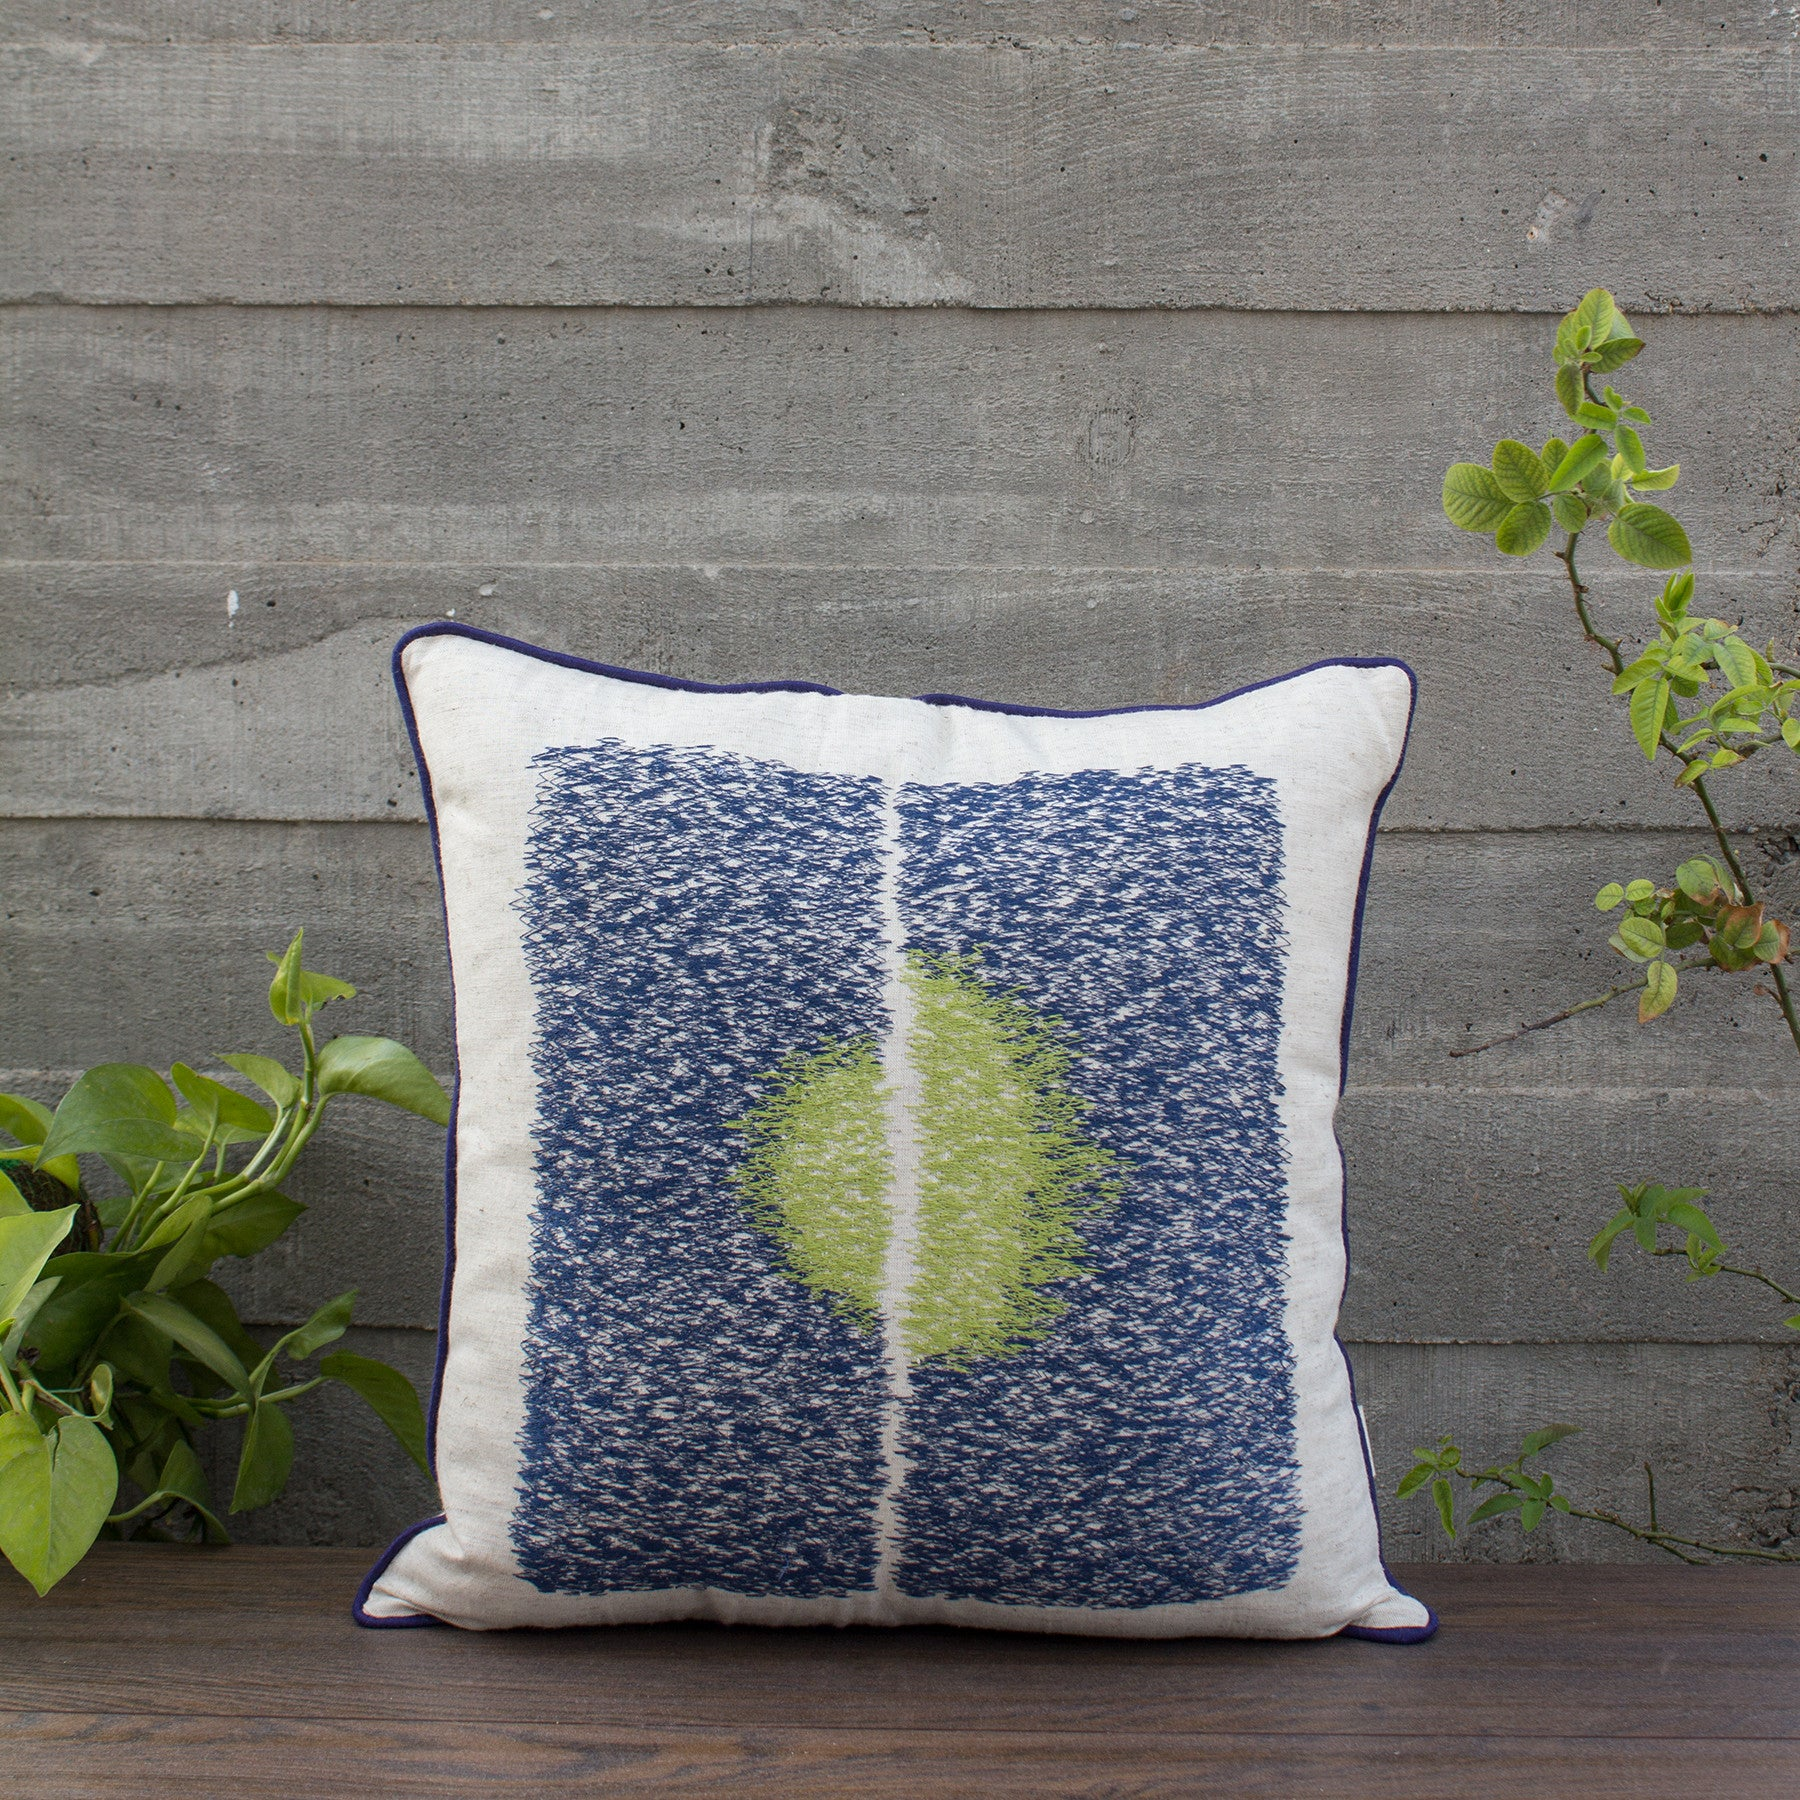 MIDNIGHT SUMMER CUSHION COVER